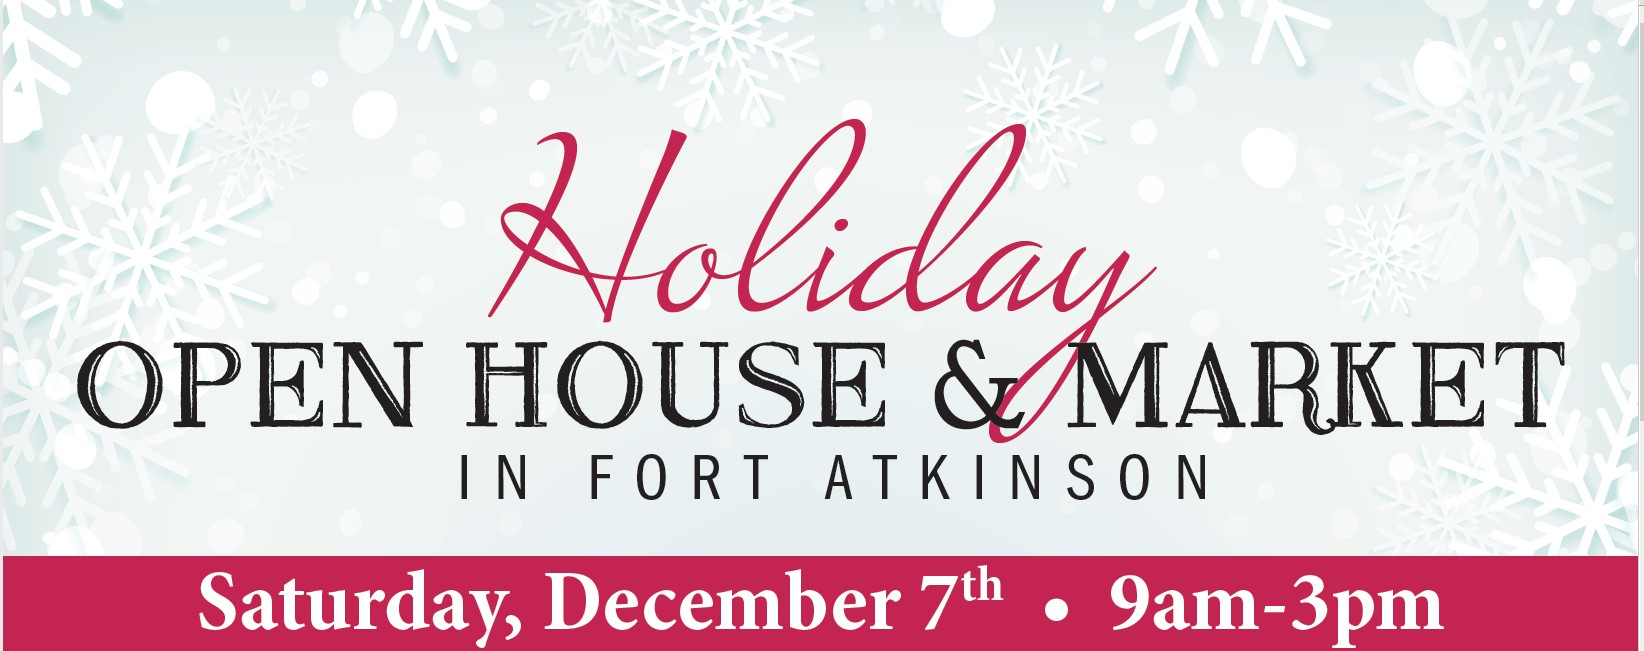 holiday open house december 7